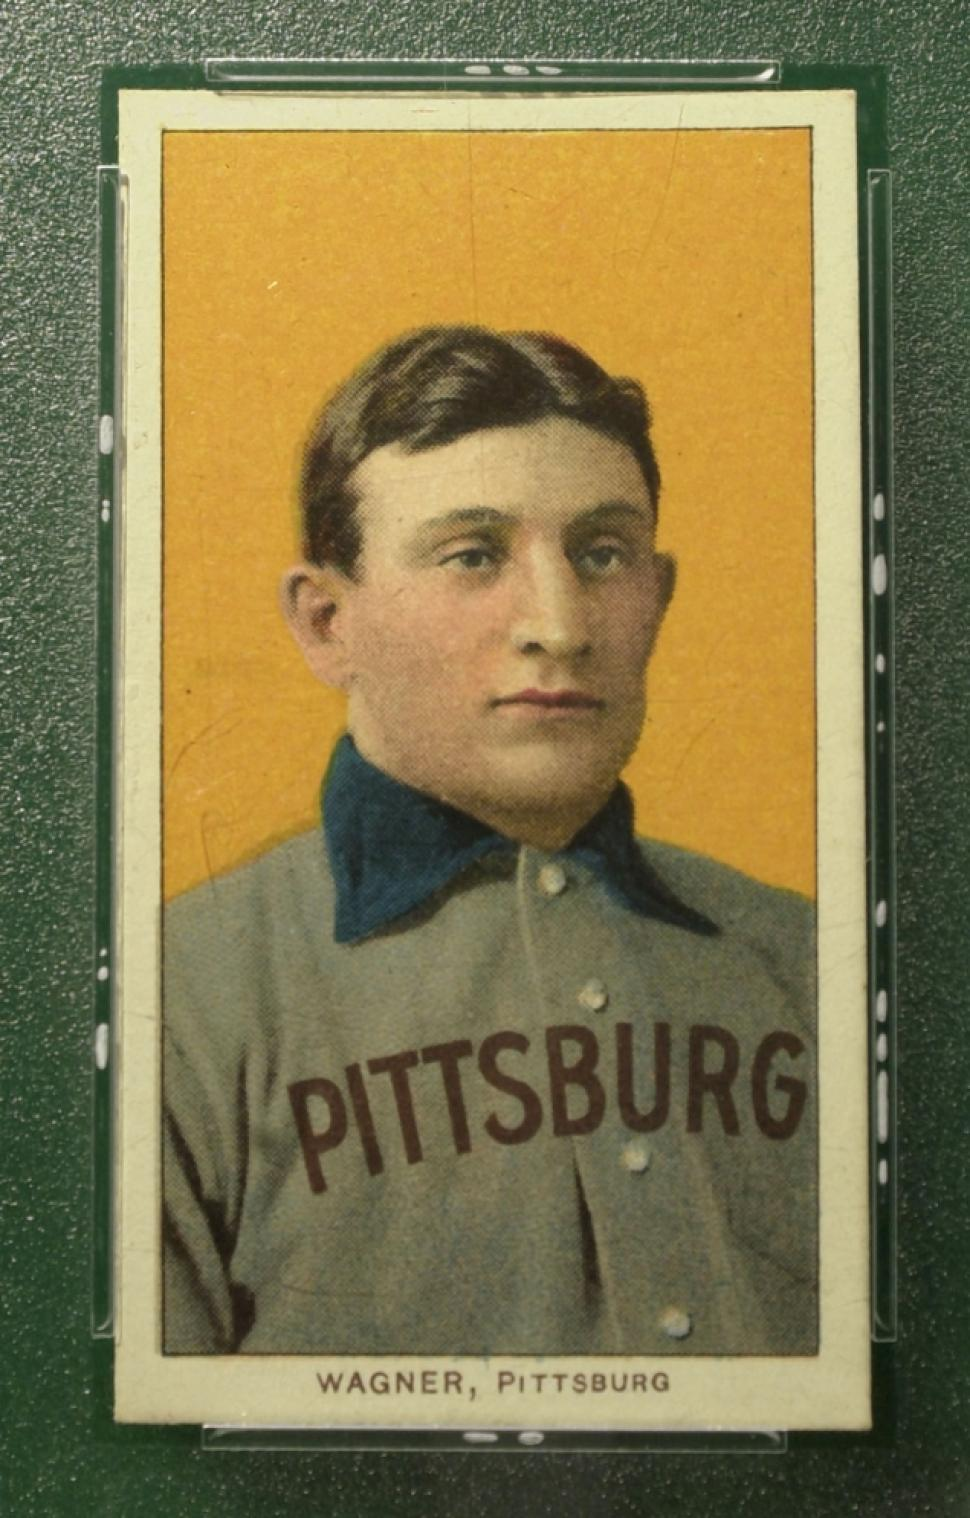 The T206 Honus Wagner, possibly the most famous baseball card of all time.